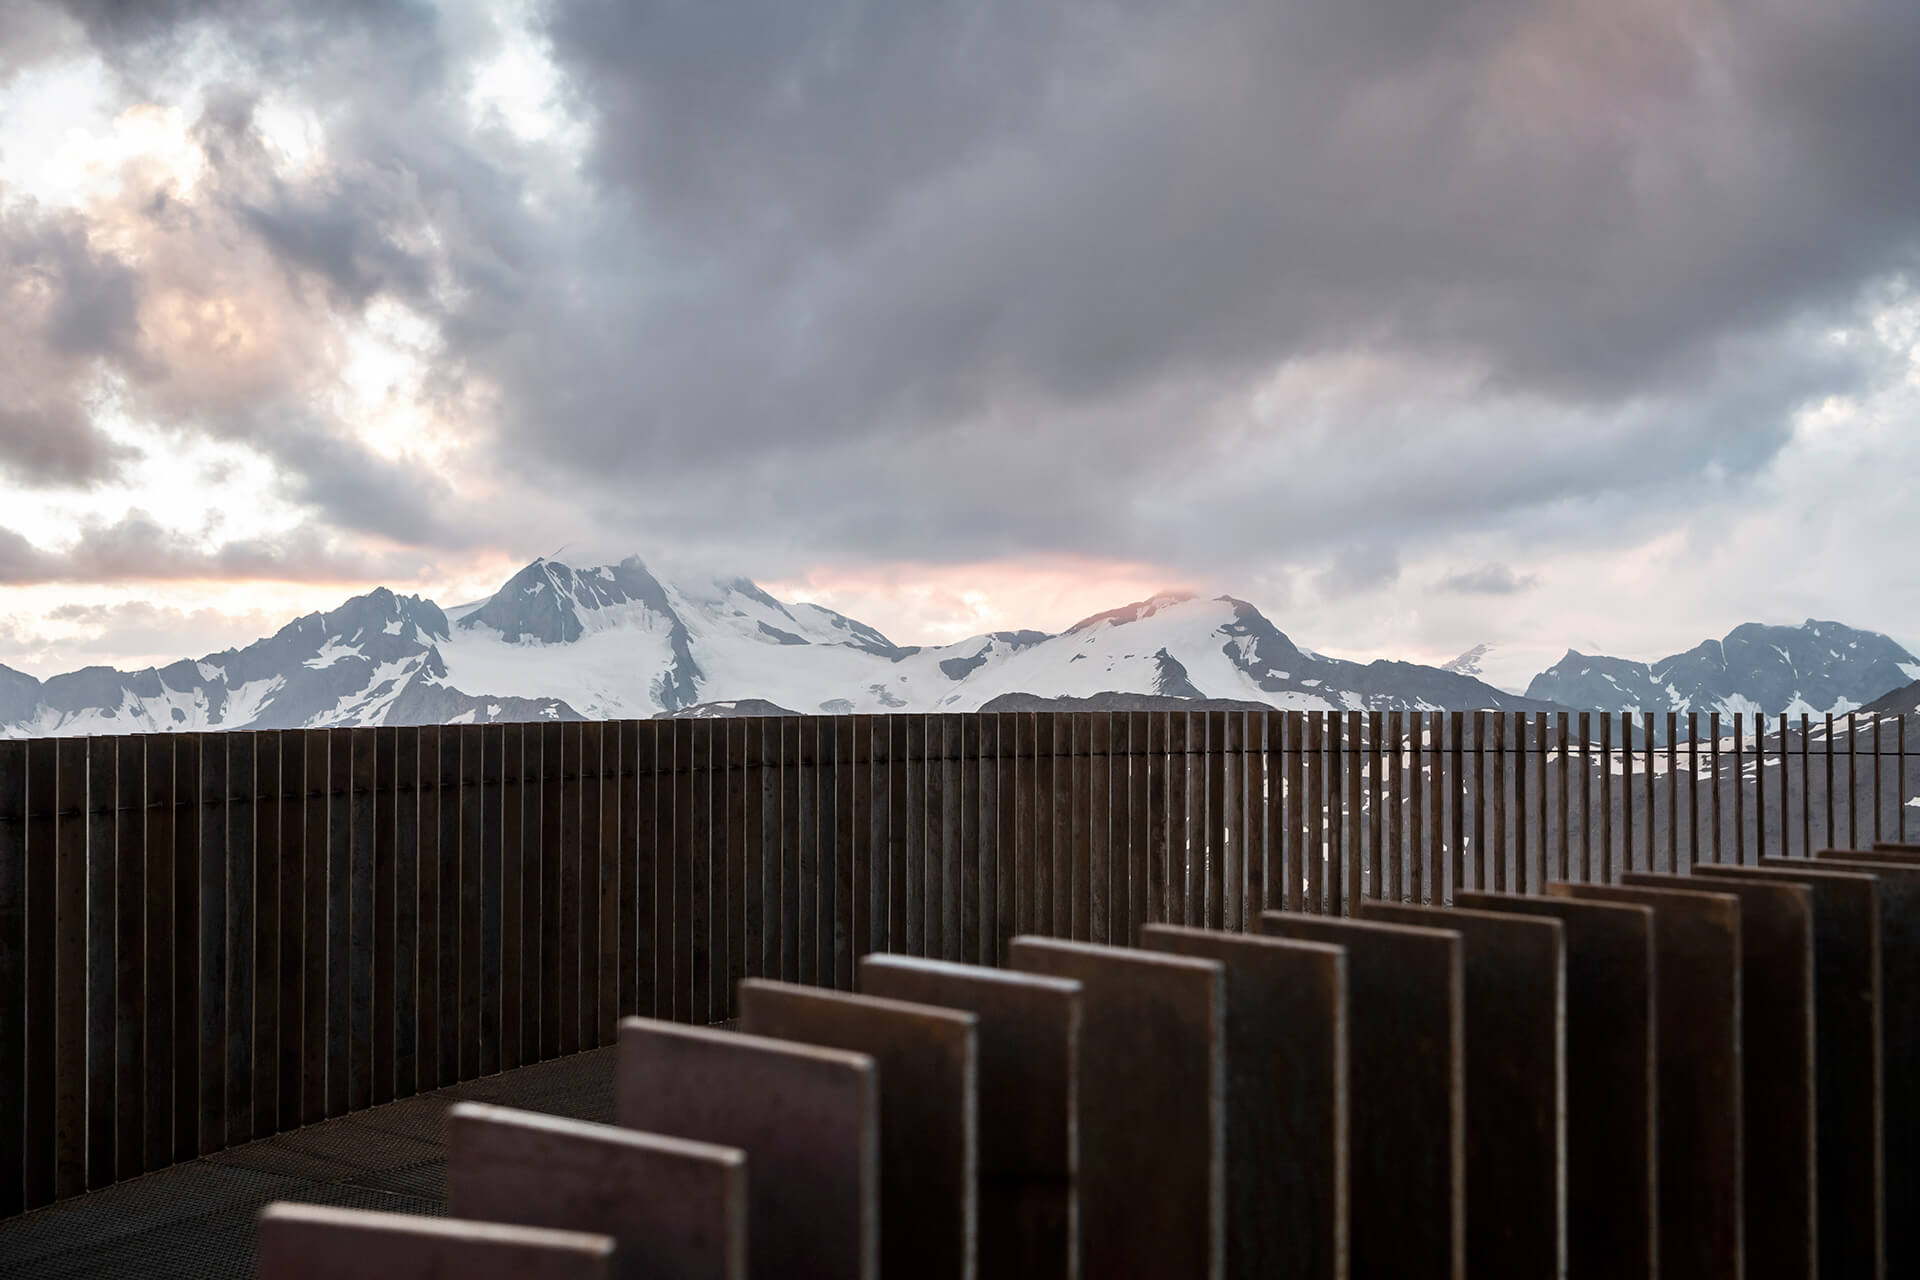 Views of the landforms seem to open and close along with the movement of the viewer | Ötzi Peak 3251m | noa* network of architecture | STIRworld